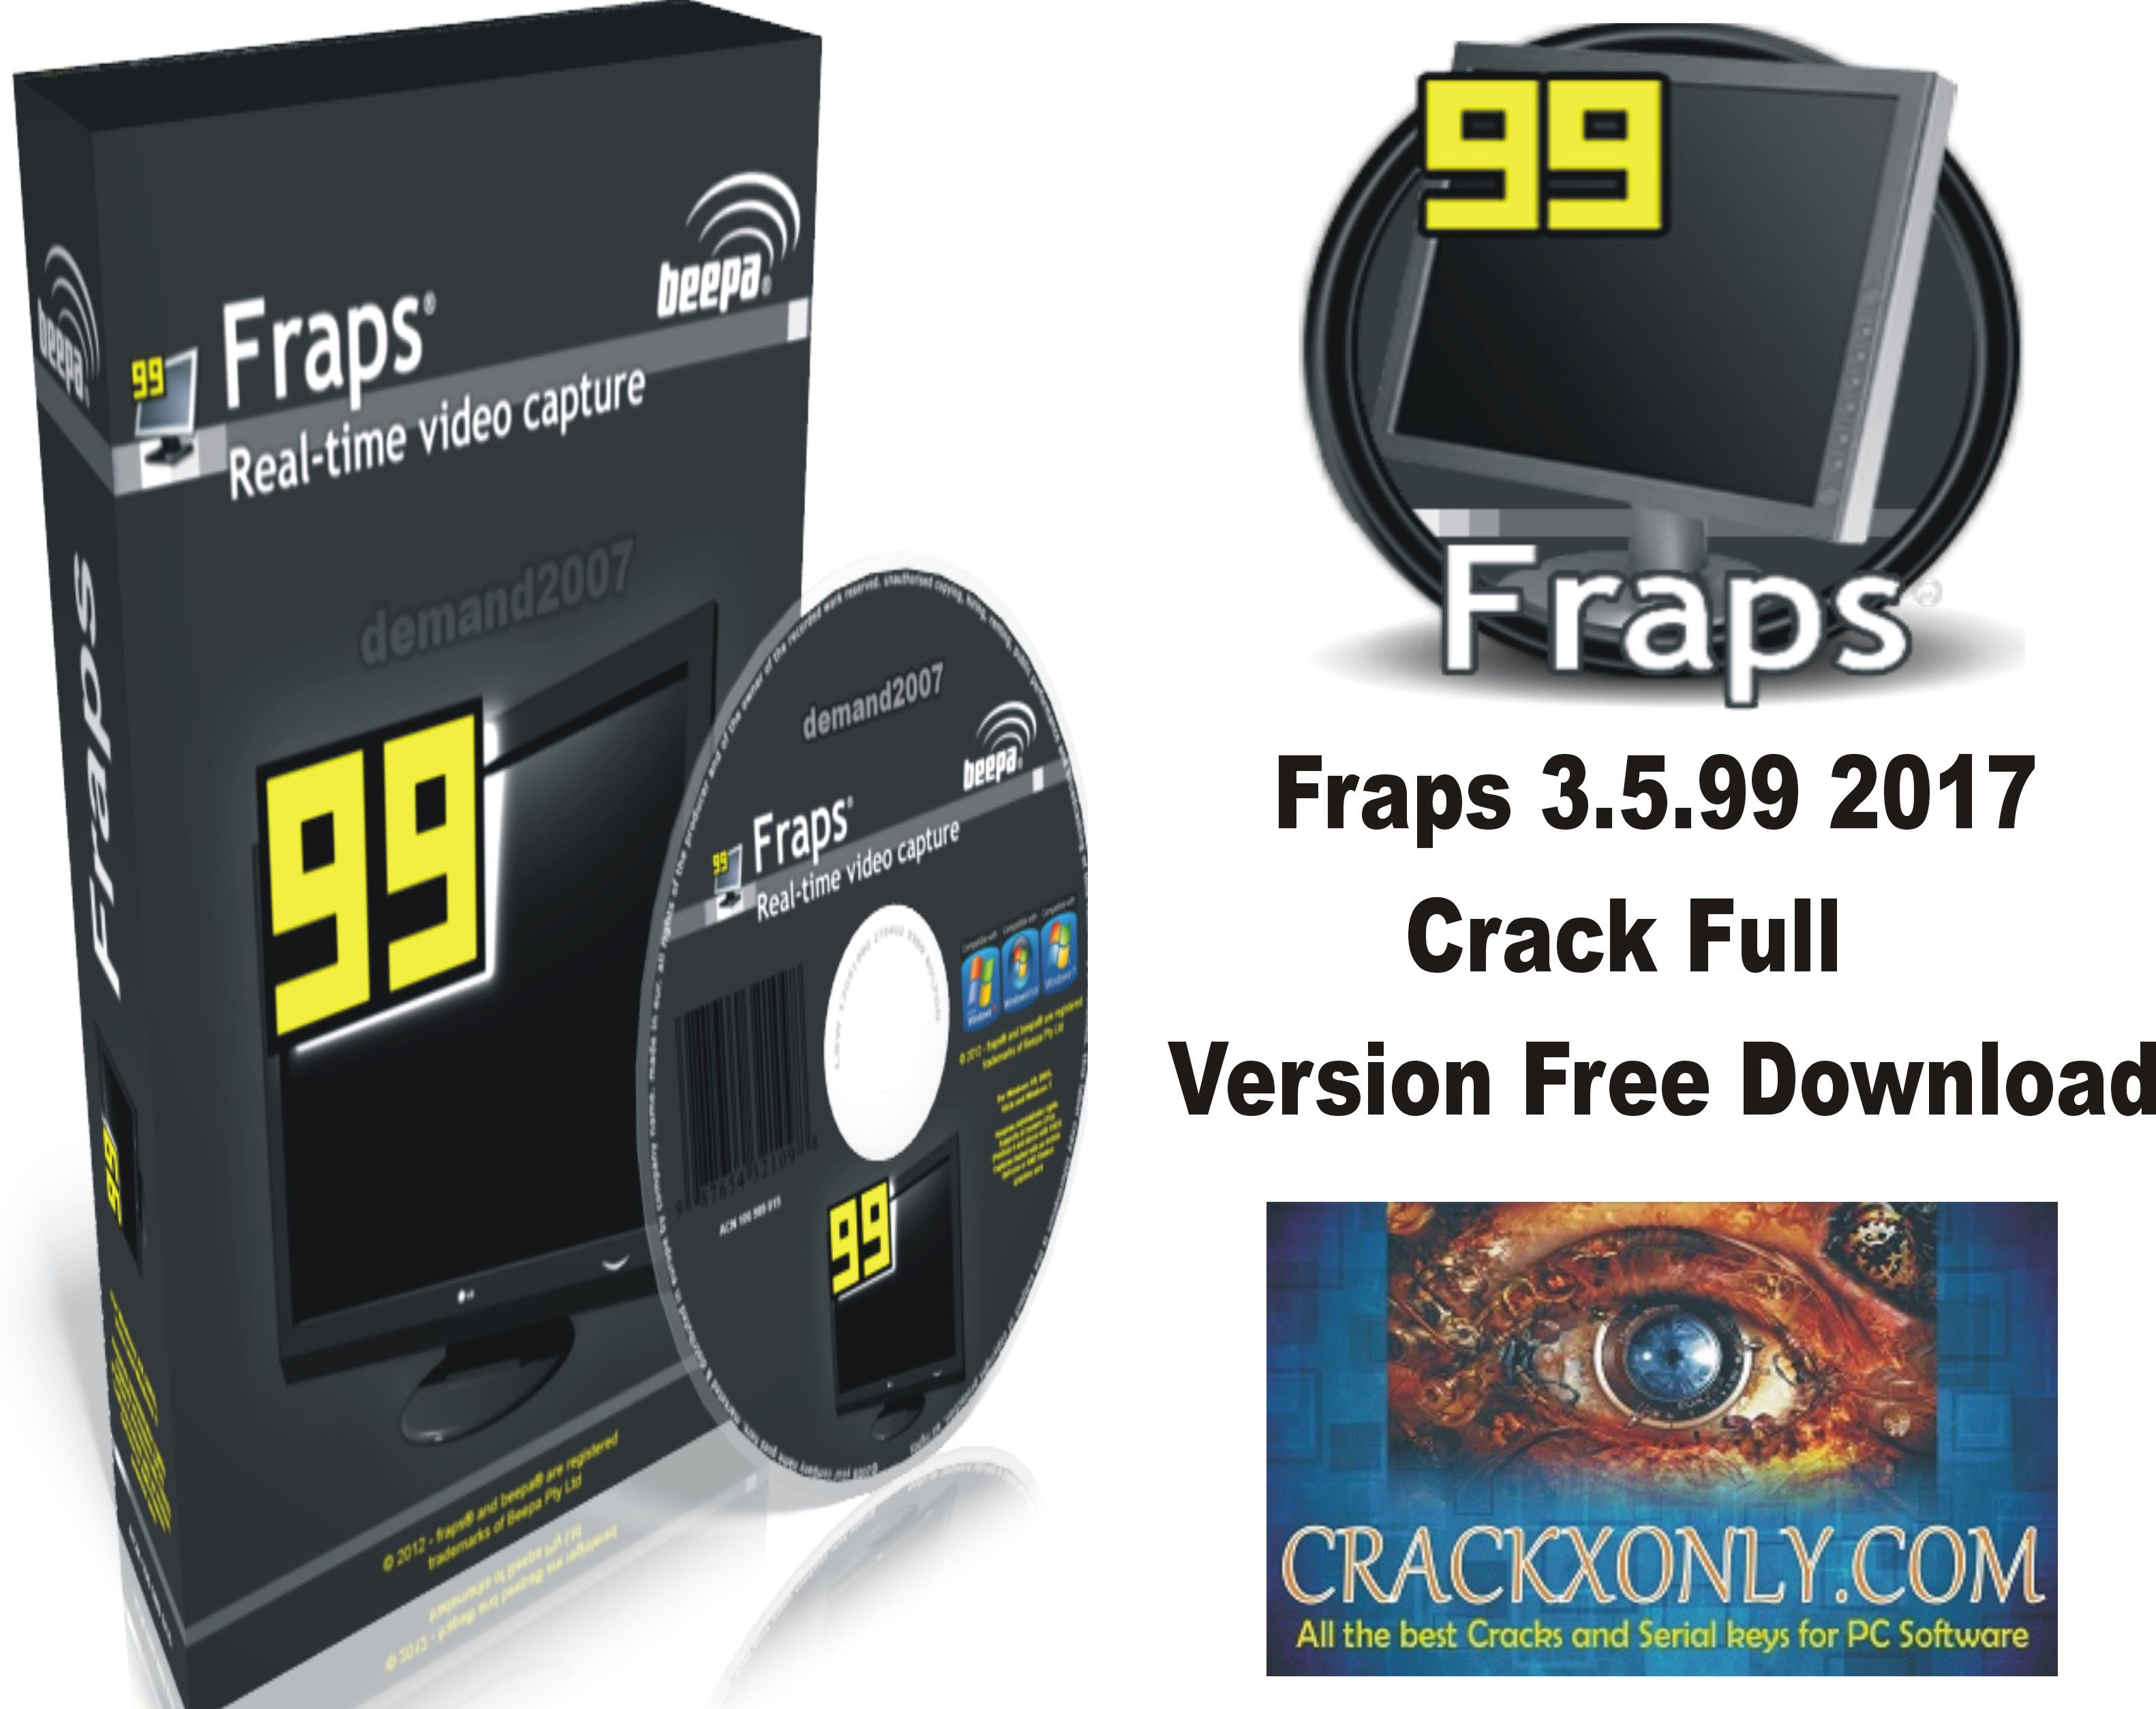 fraps full version cracked free download